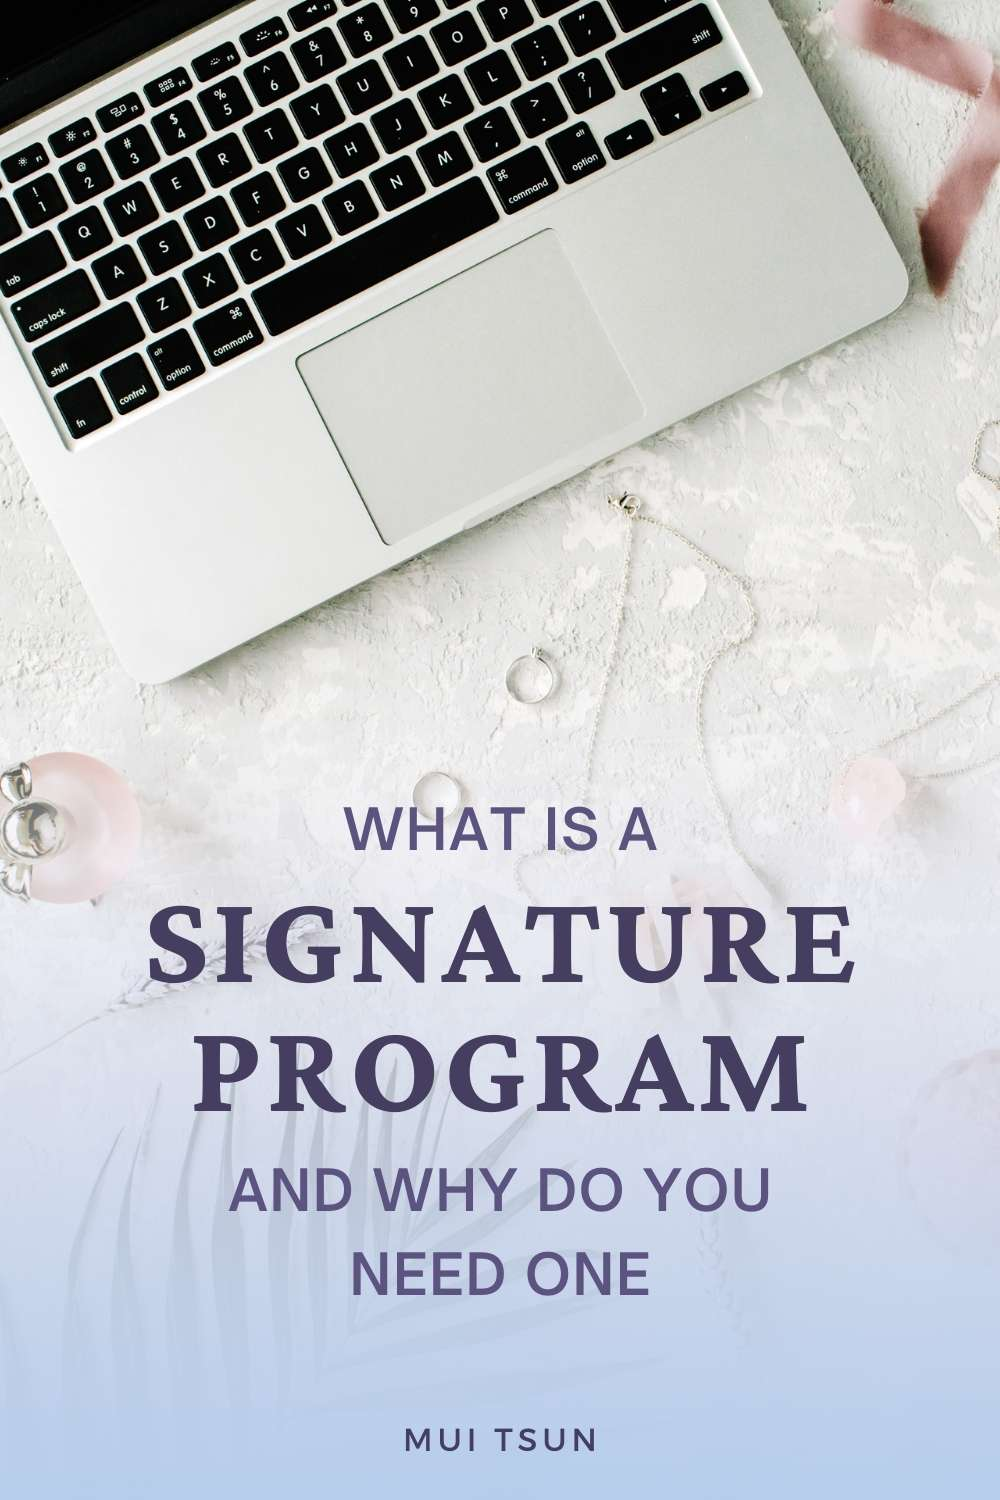 What Is a Signature Program And Why Do You Need One?